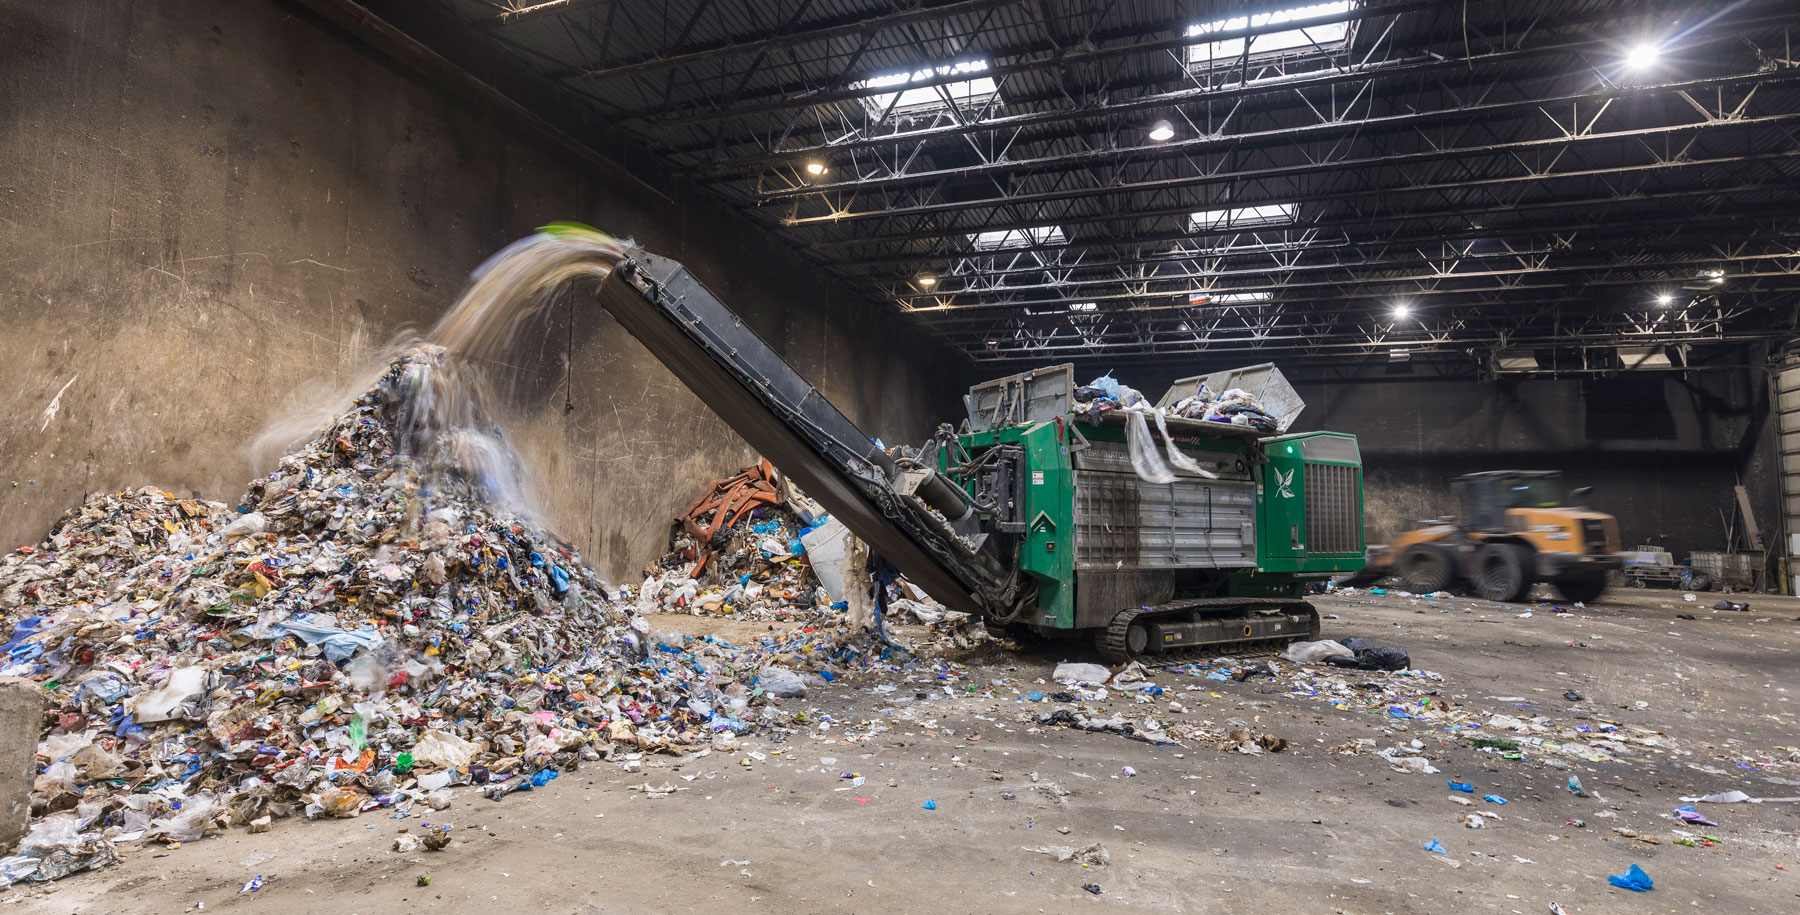 Prairieland Solid Waste Facility in Minnesota, analyzed costs and made processes more profitable with the help of a Terminator 6000 waste shredder.